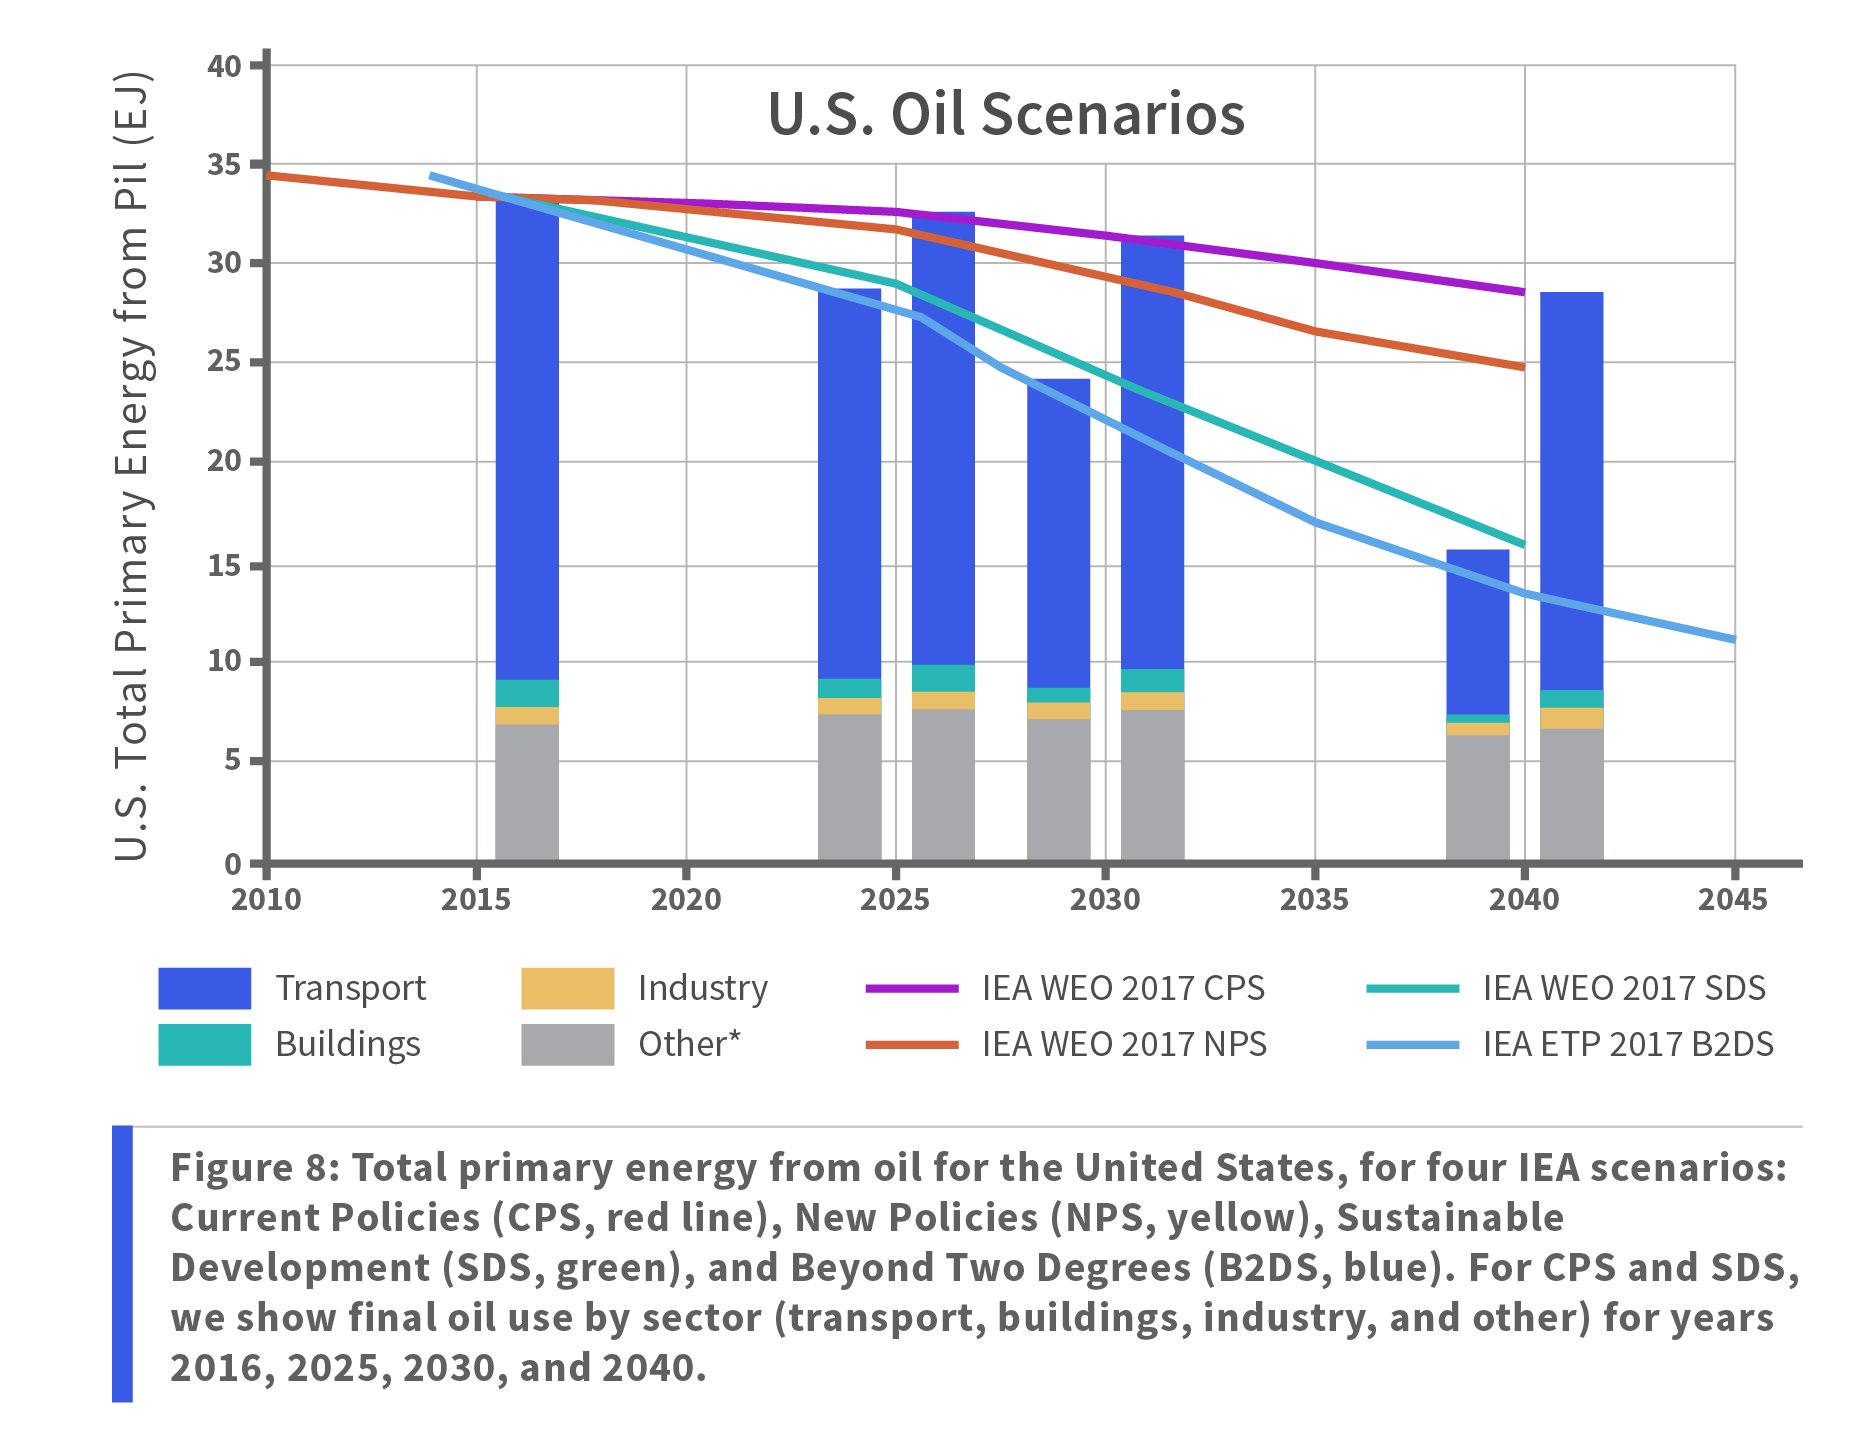 Figure 8: Total primary energy from oil for the United States, for four IEA scenarios: Current Policies (CPS, red line), New Policies (NPS, yellow), Sustainable Development (SDS, green), and Beyond Two Degrees (B2DS, blue). For CPS and SDS, we show final oil use by sector (transport, buildings, industry, and other) for years 2016, 2025, 2030, and 2040.